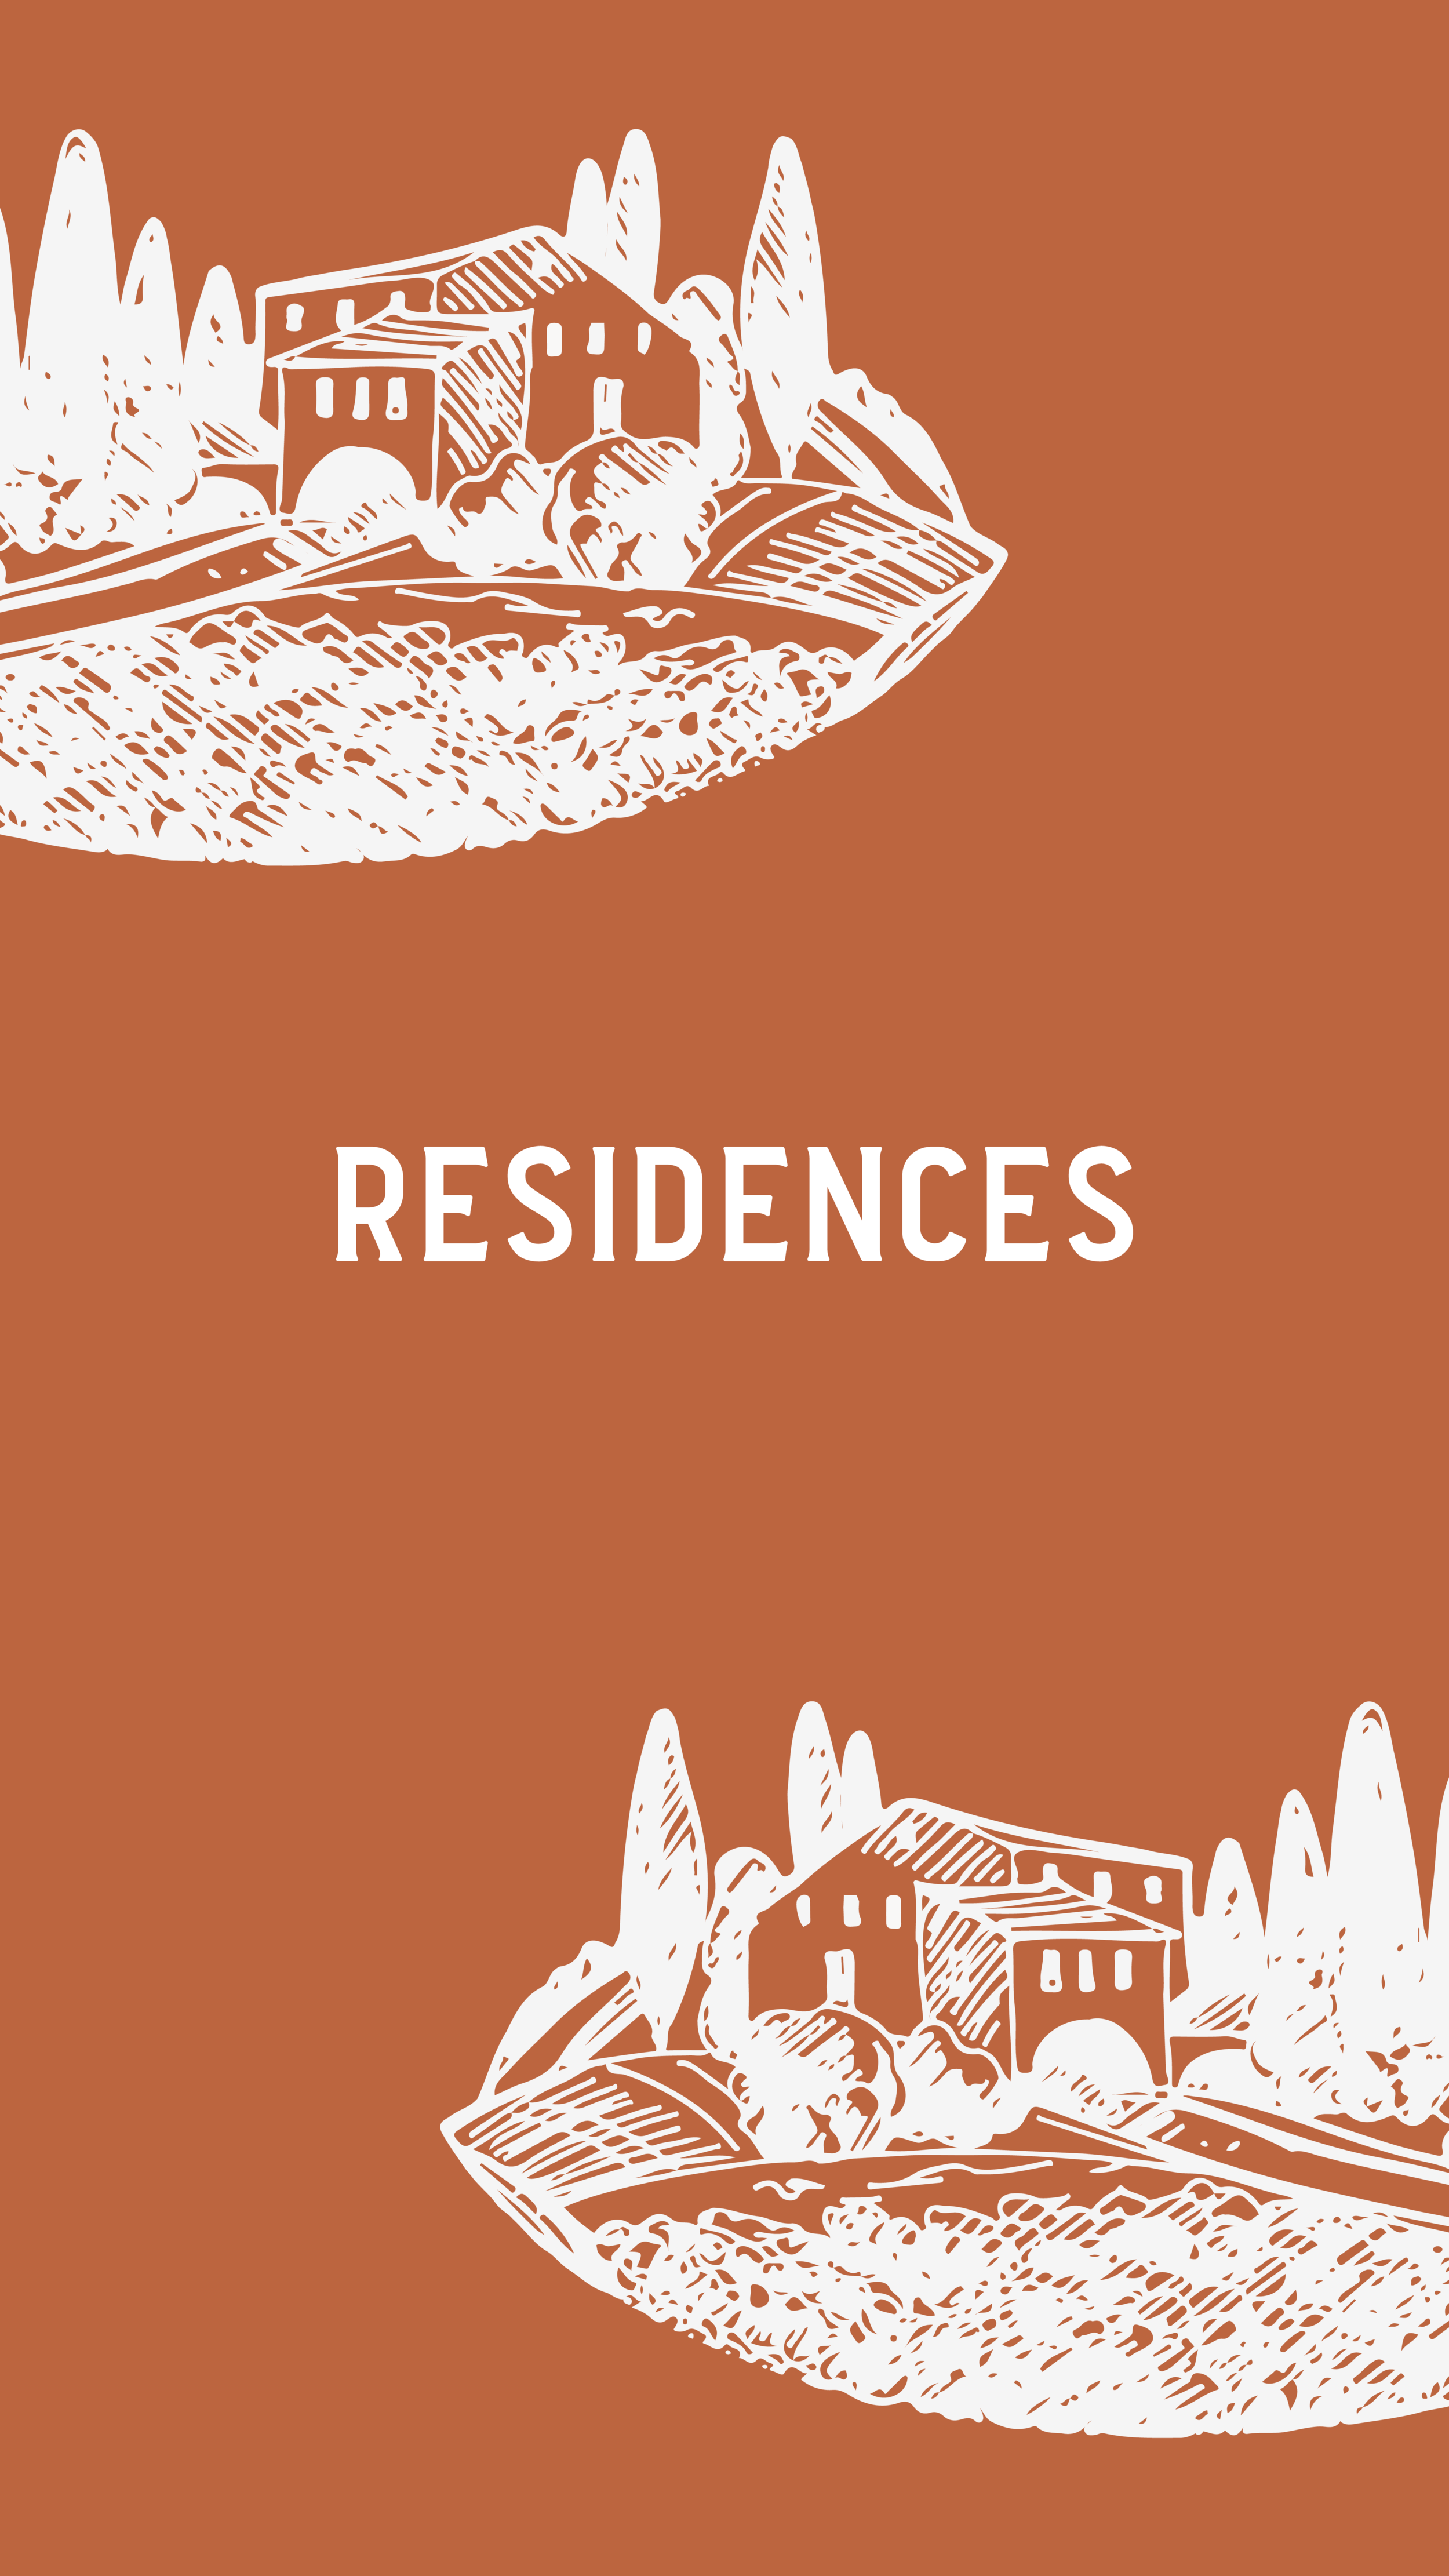 RC-highlights-residences-2-01 copy.png